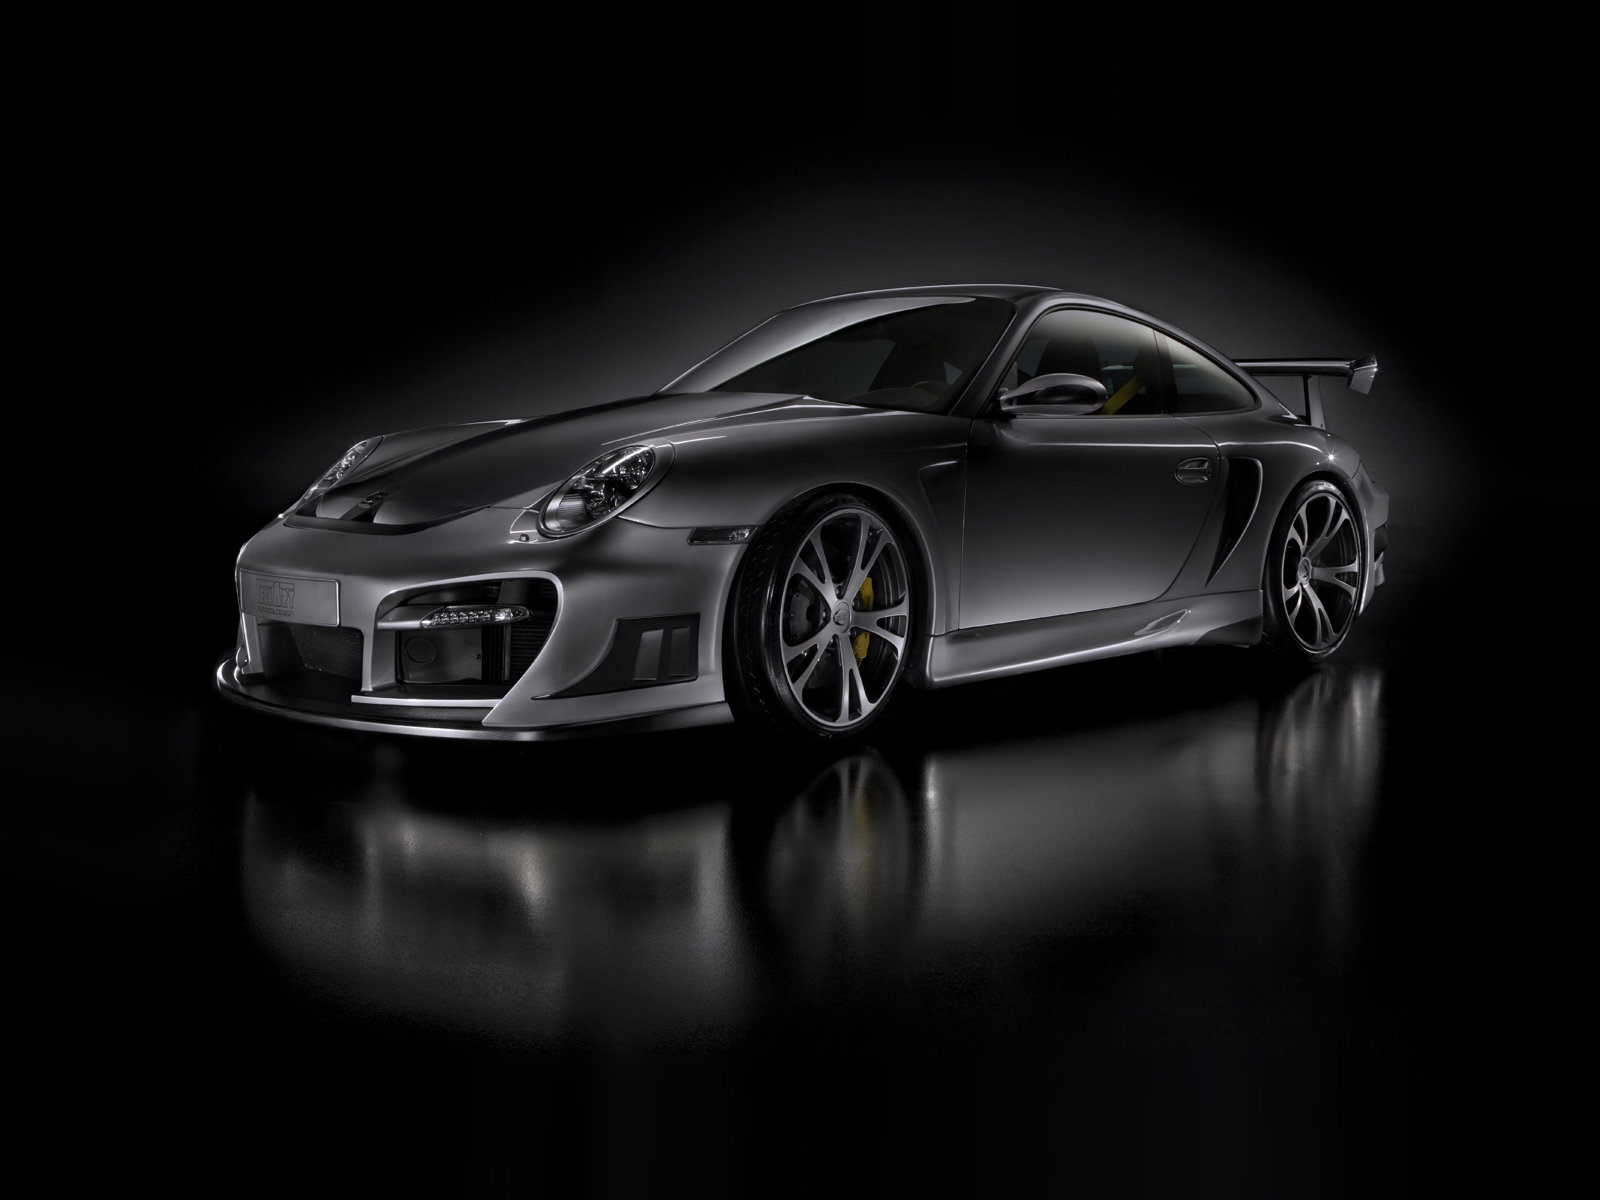 techart_porsche_911-turbo-gtstreet-r_2008_1 Remarkable Techart Porsche 911 Gt2 Gtstreet Rs Cars Trend